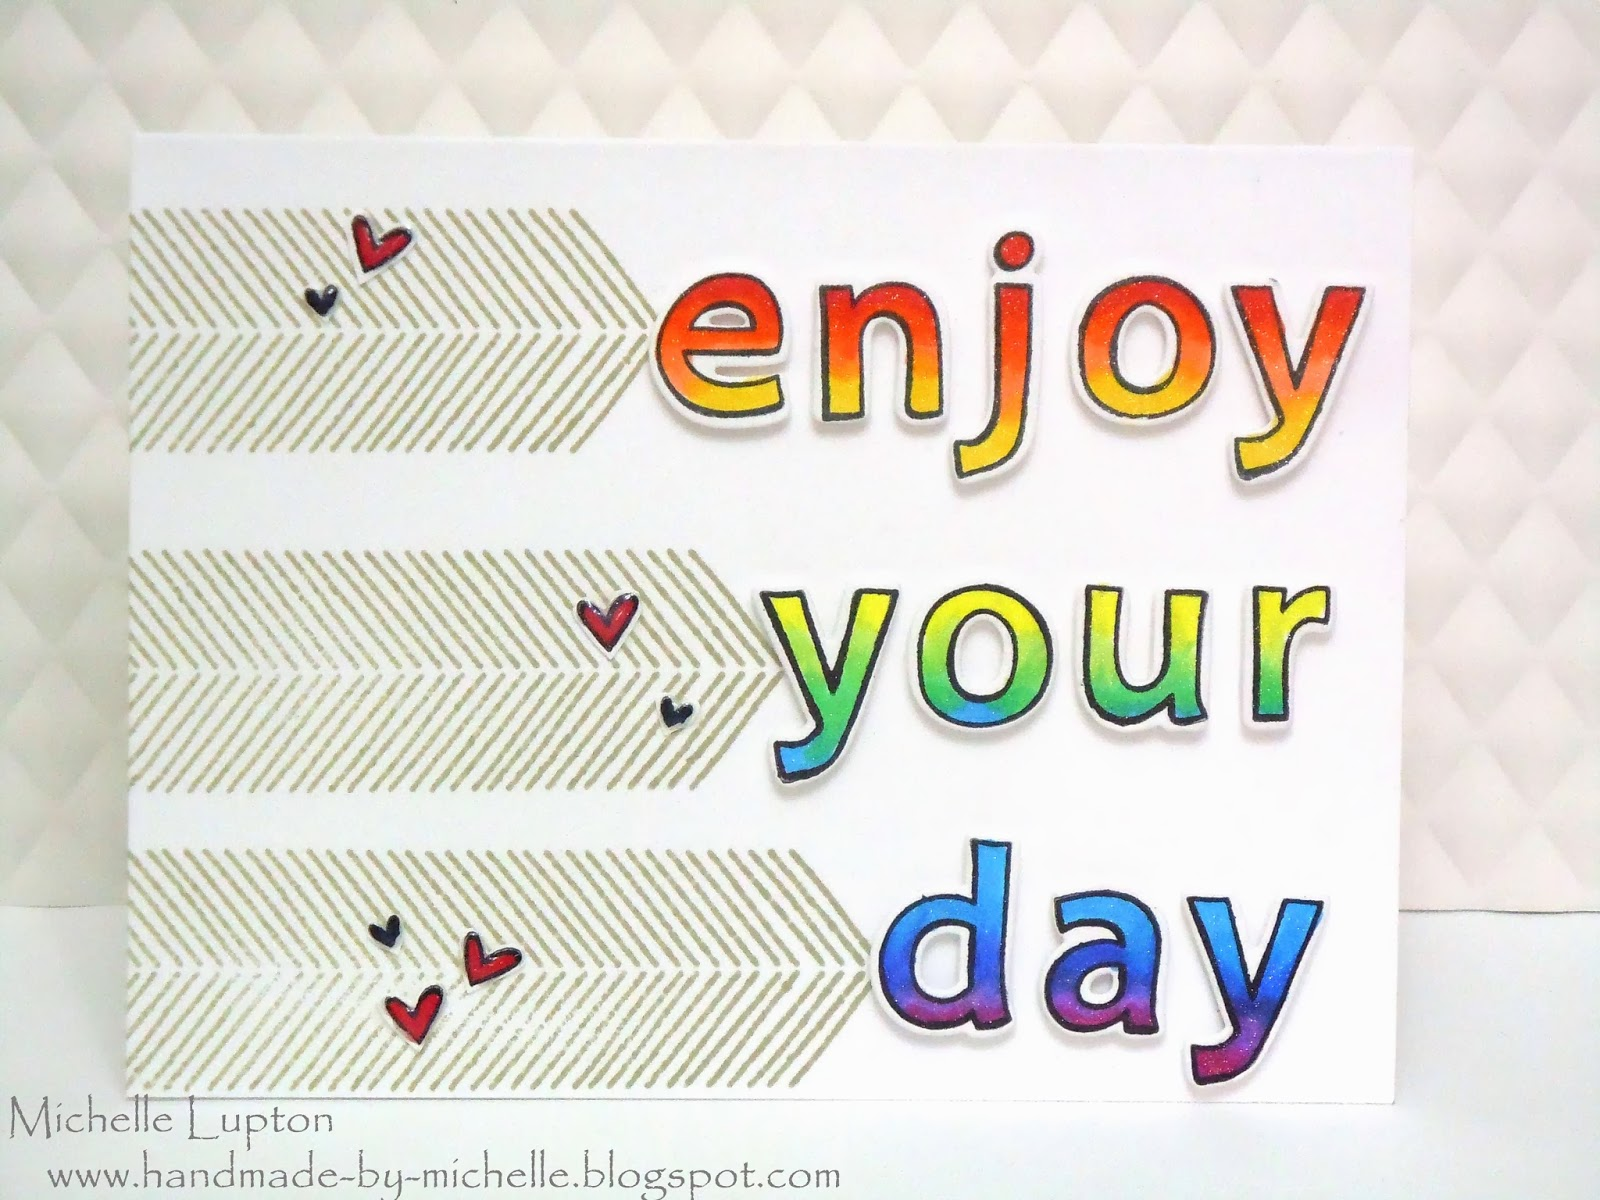 Handmade by Michelle: Enjoy your day